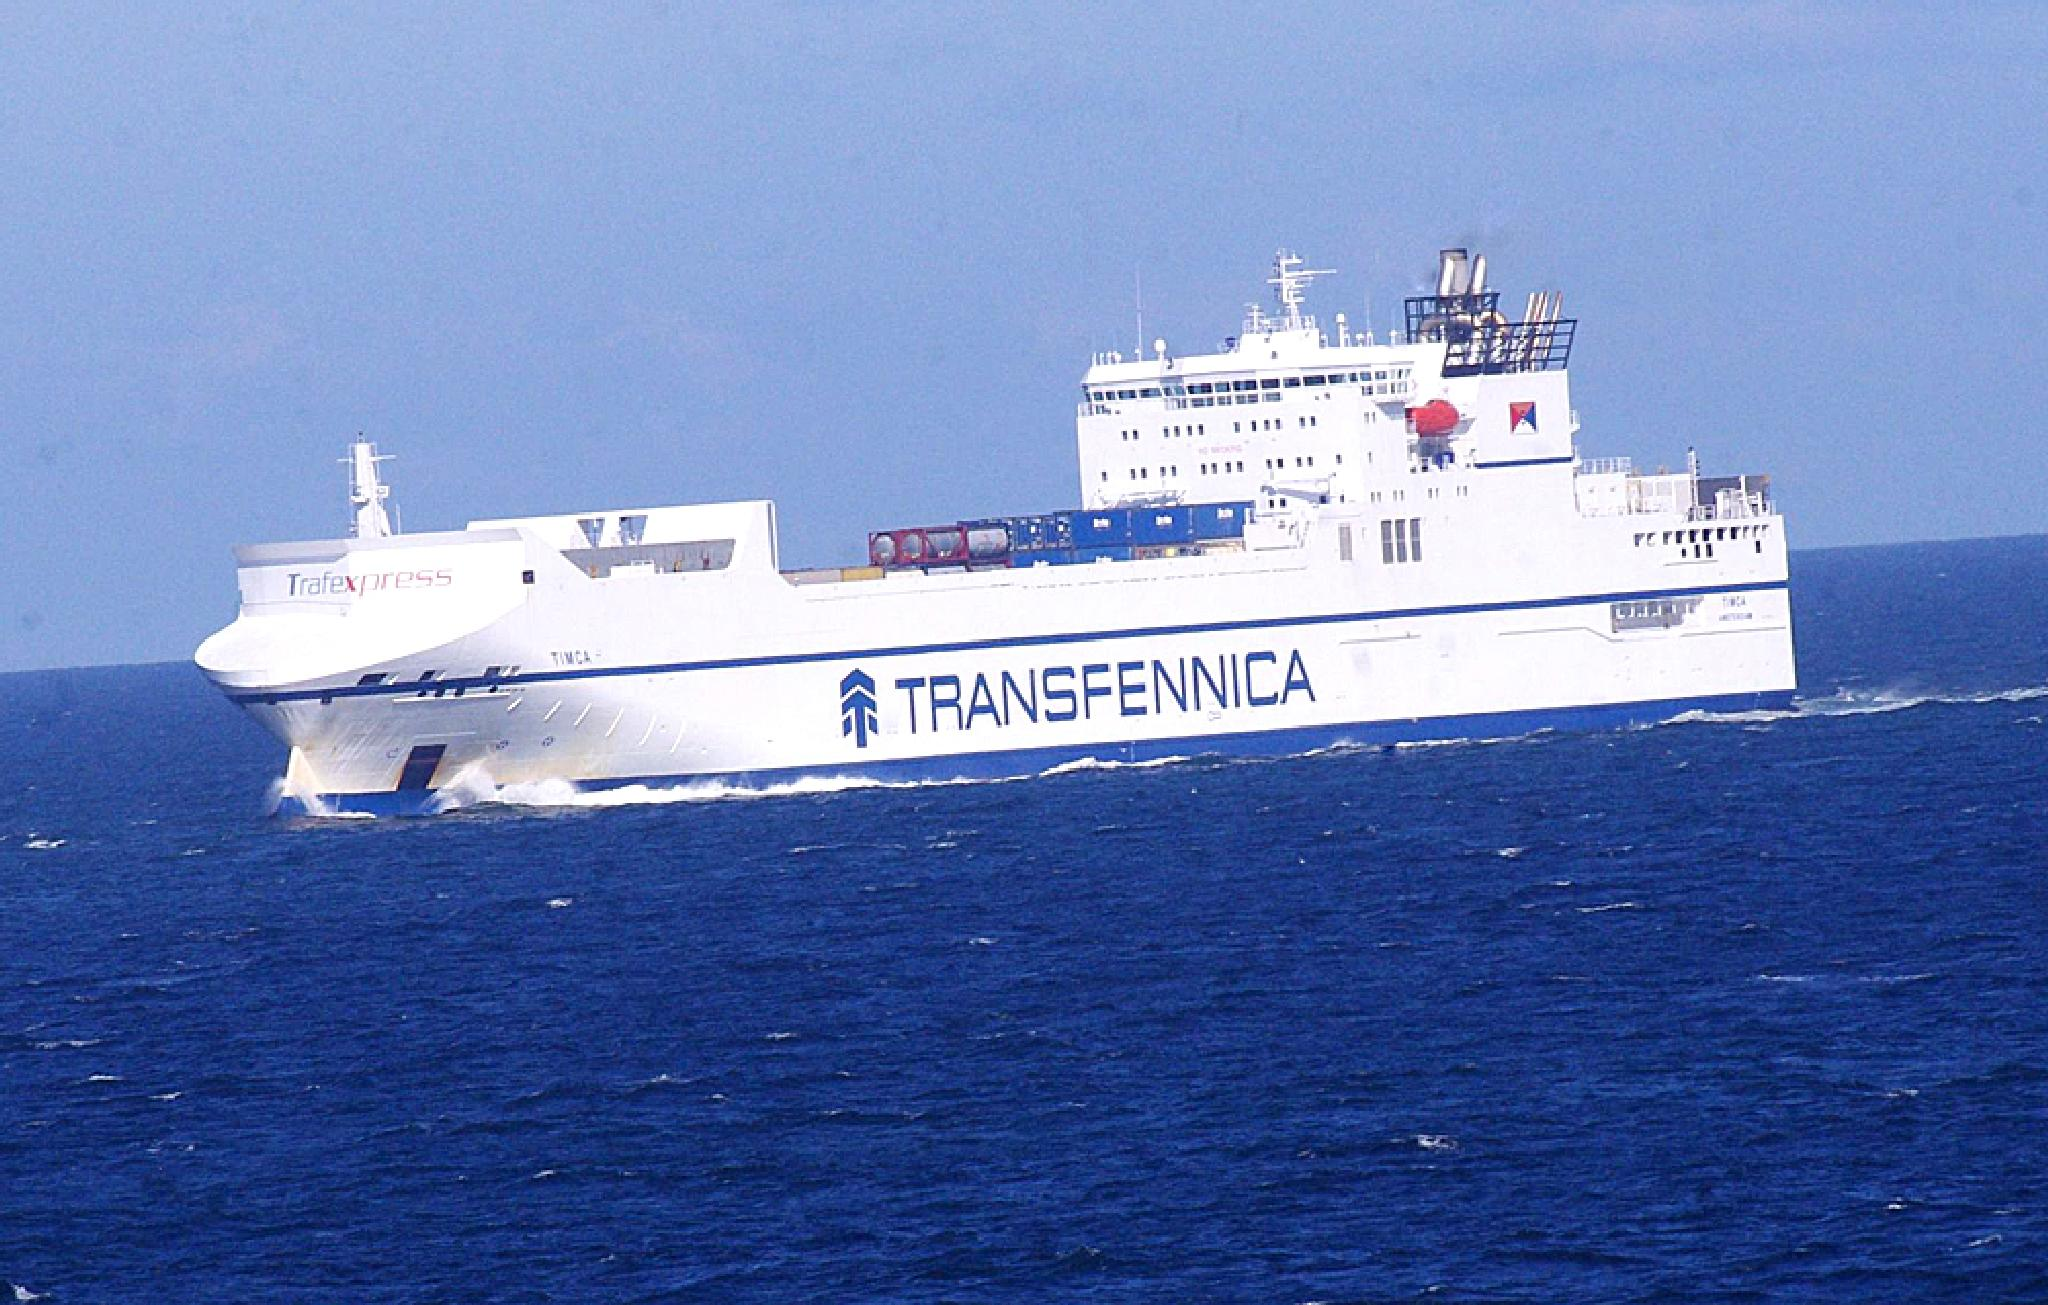 Baltic Sea Transfennica RO-RO Ferry 'Timca' 17 July 2015 by Owen Smithers